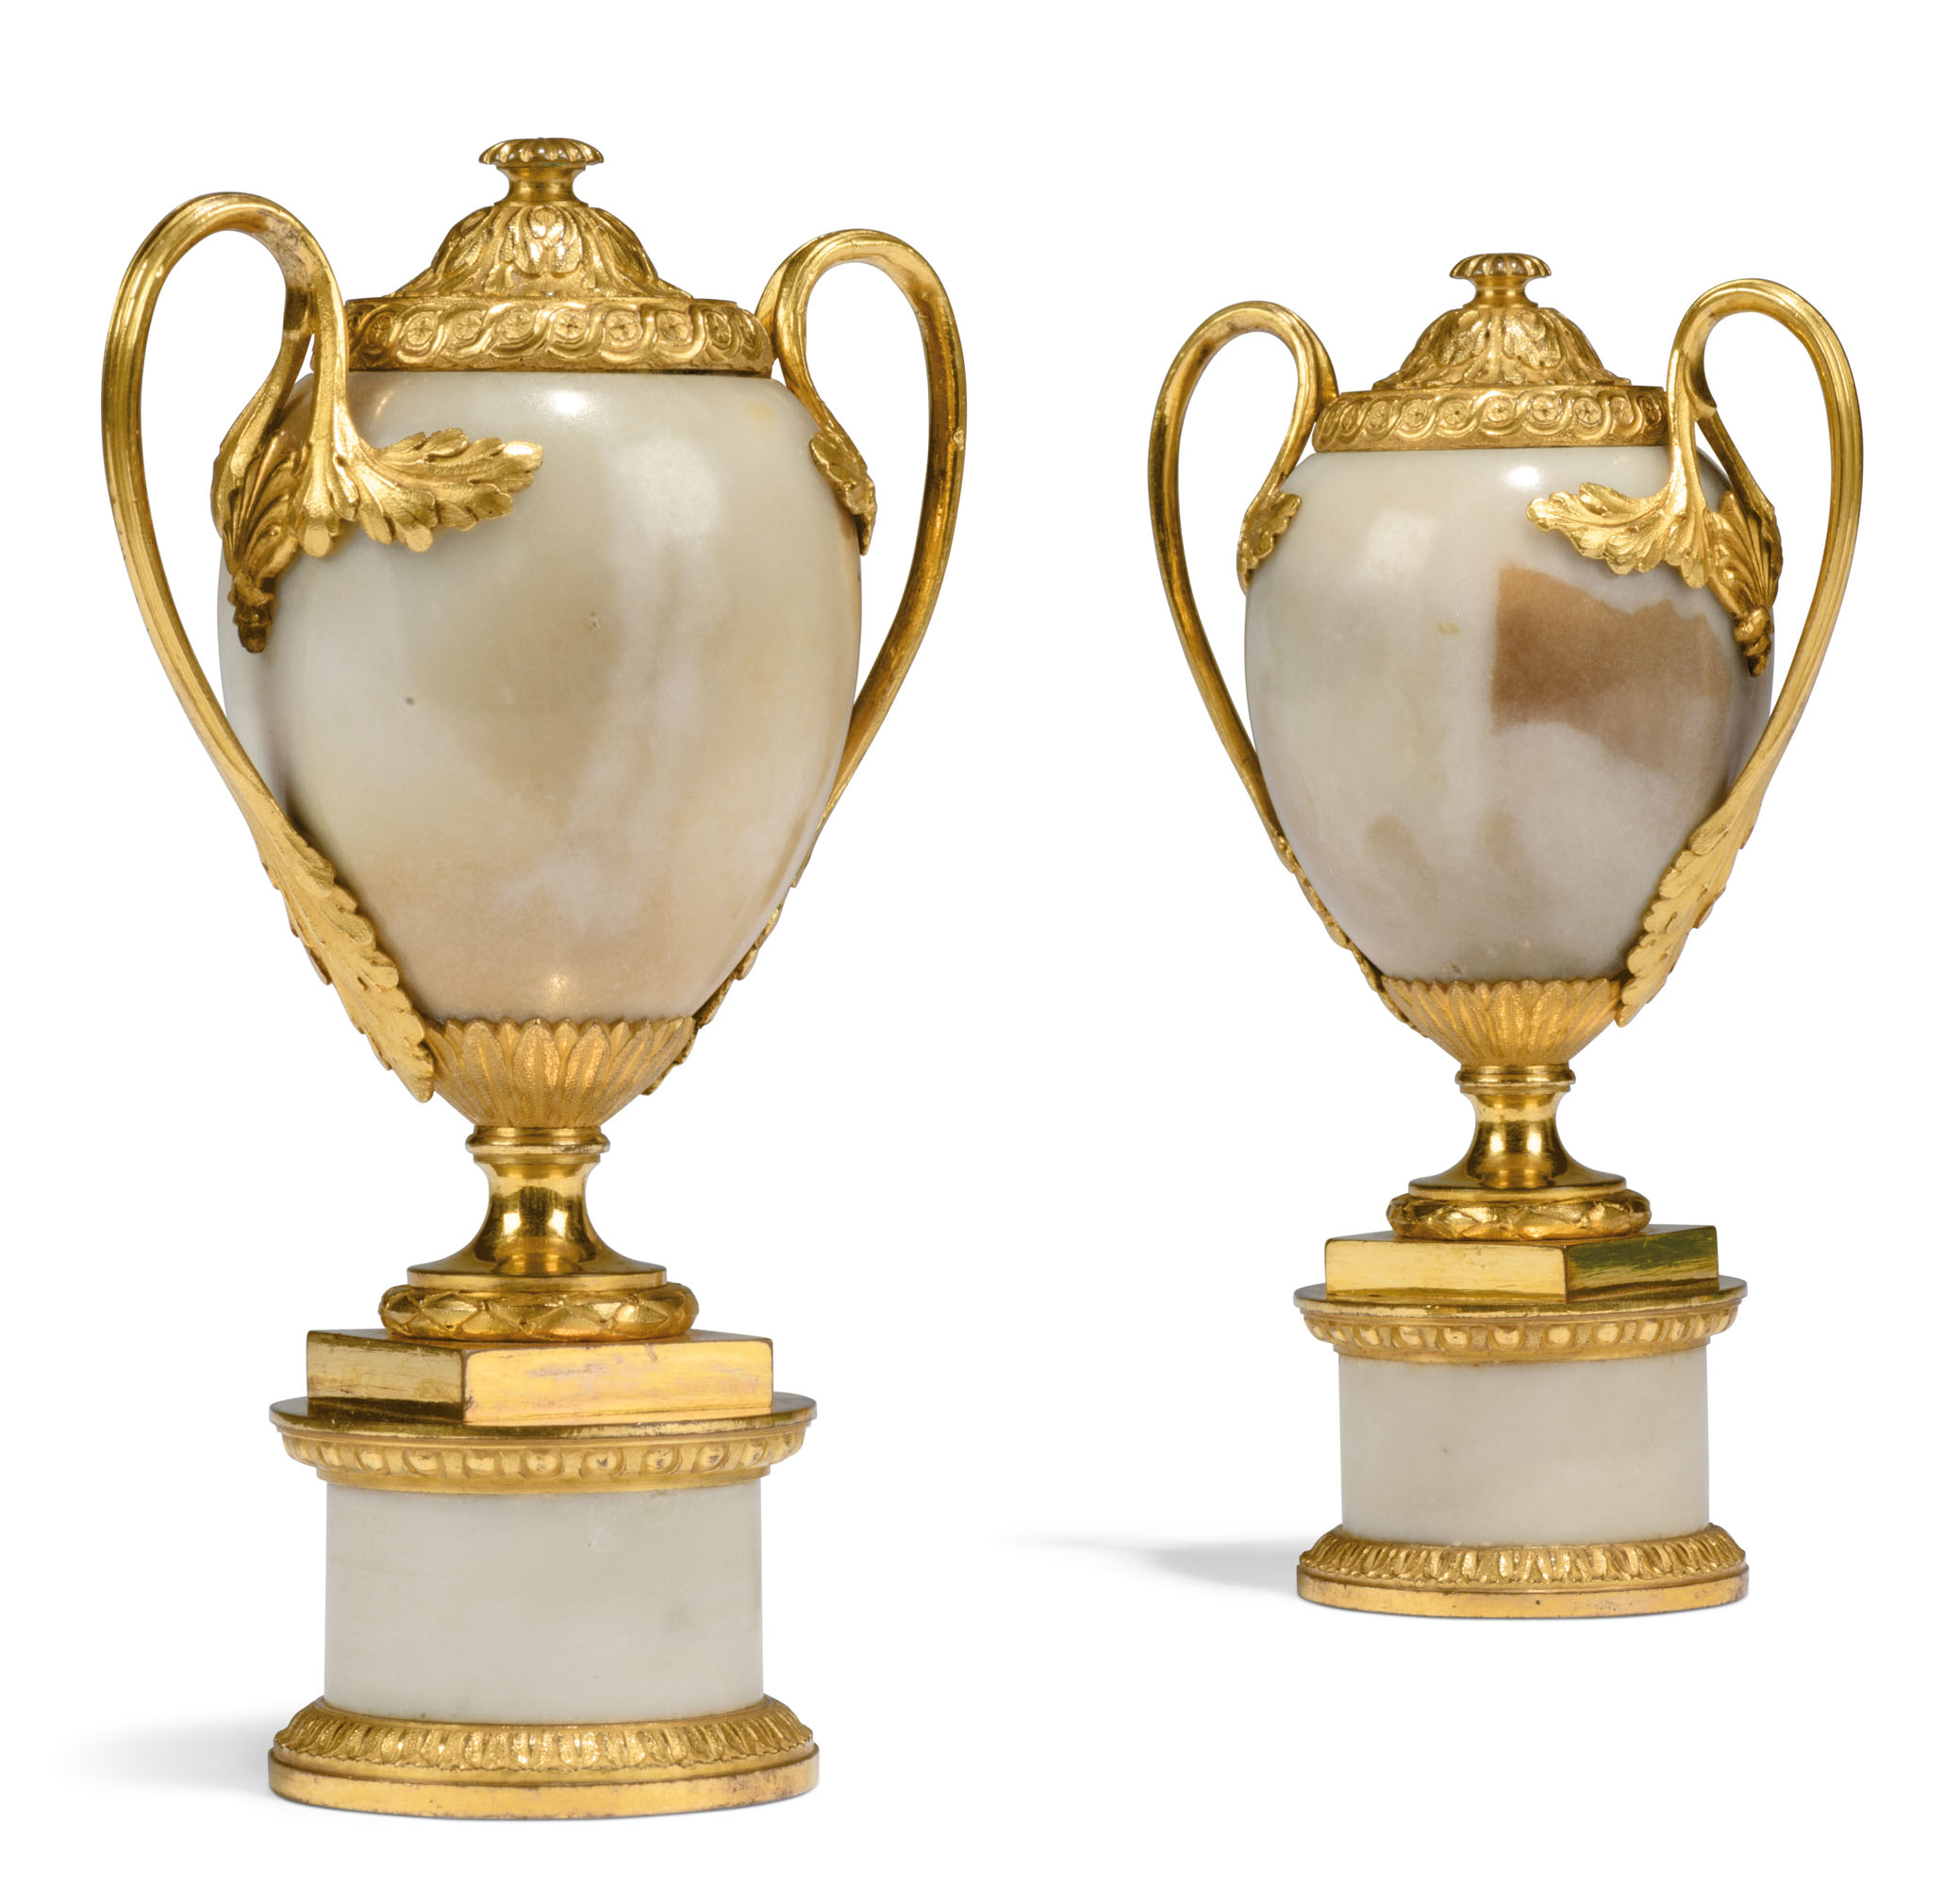 A PAIR OF GEORGE III ORMOLU-MOUNTED WHITE MARBLE CANDLE VASES